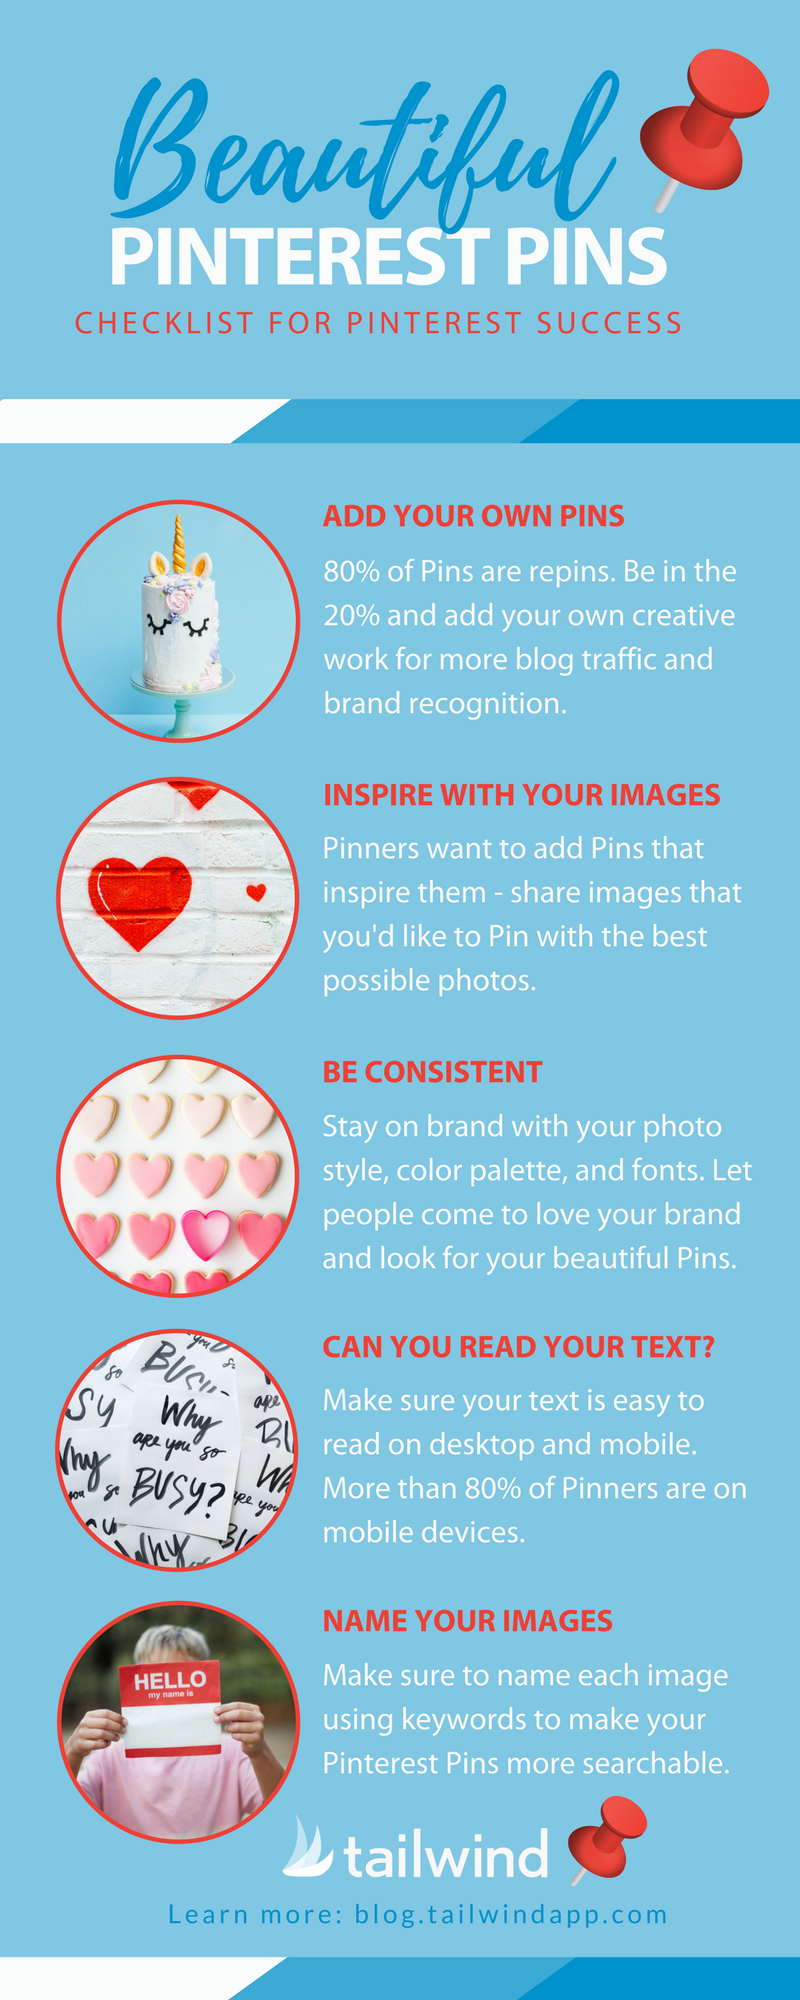 How to Create Beautiful Pinterest Pins